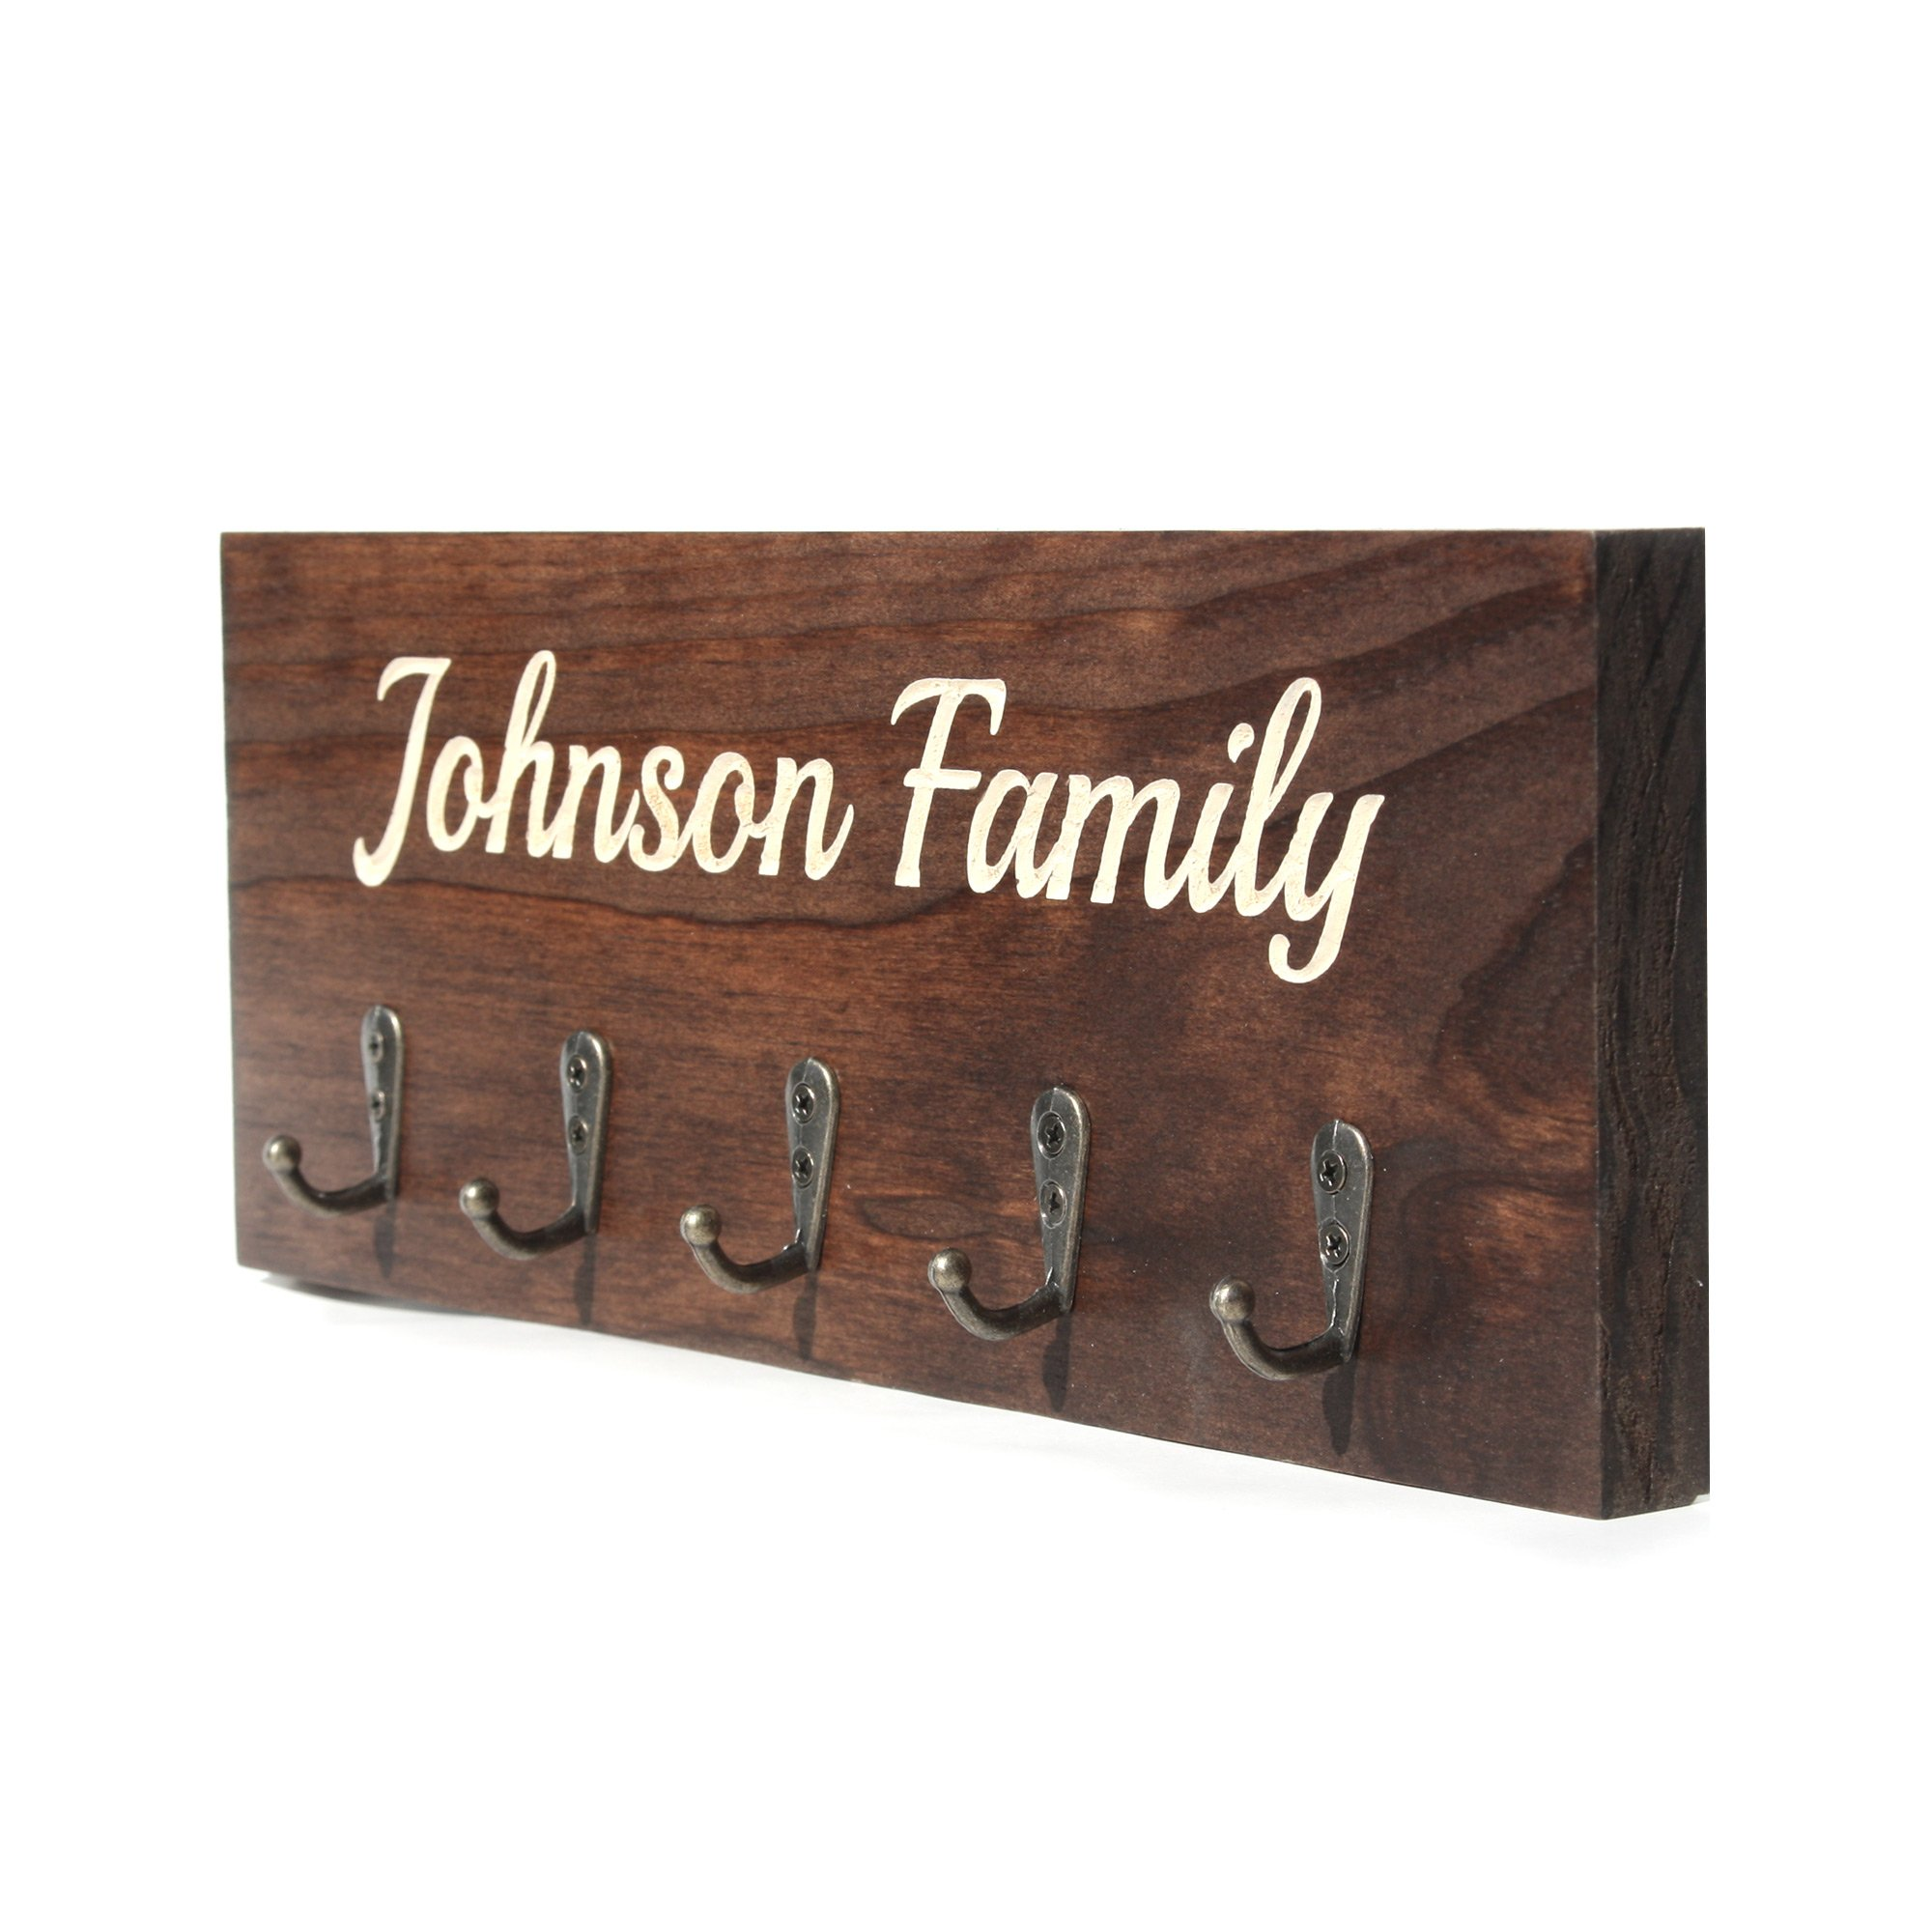 Personalized Wall Mounted Key Rack - 11.75'' x 4.5'' - Solid Wood